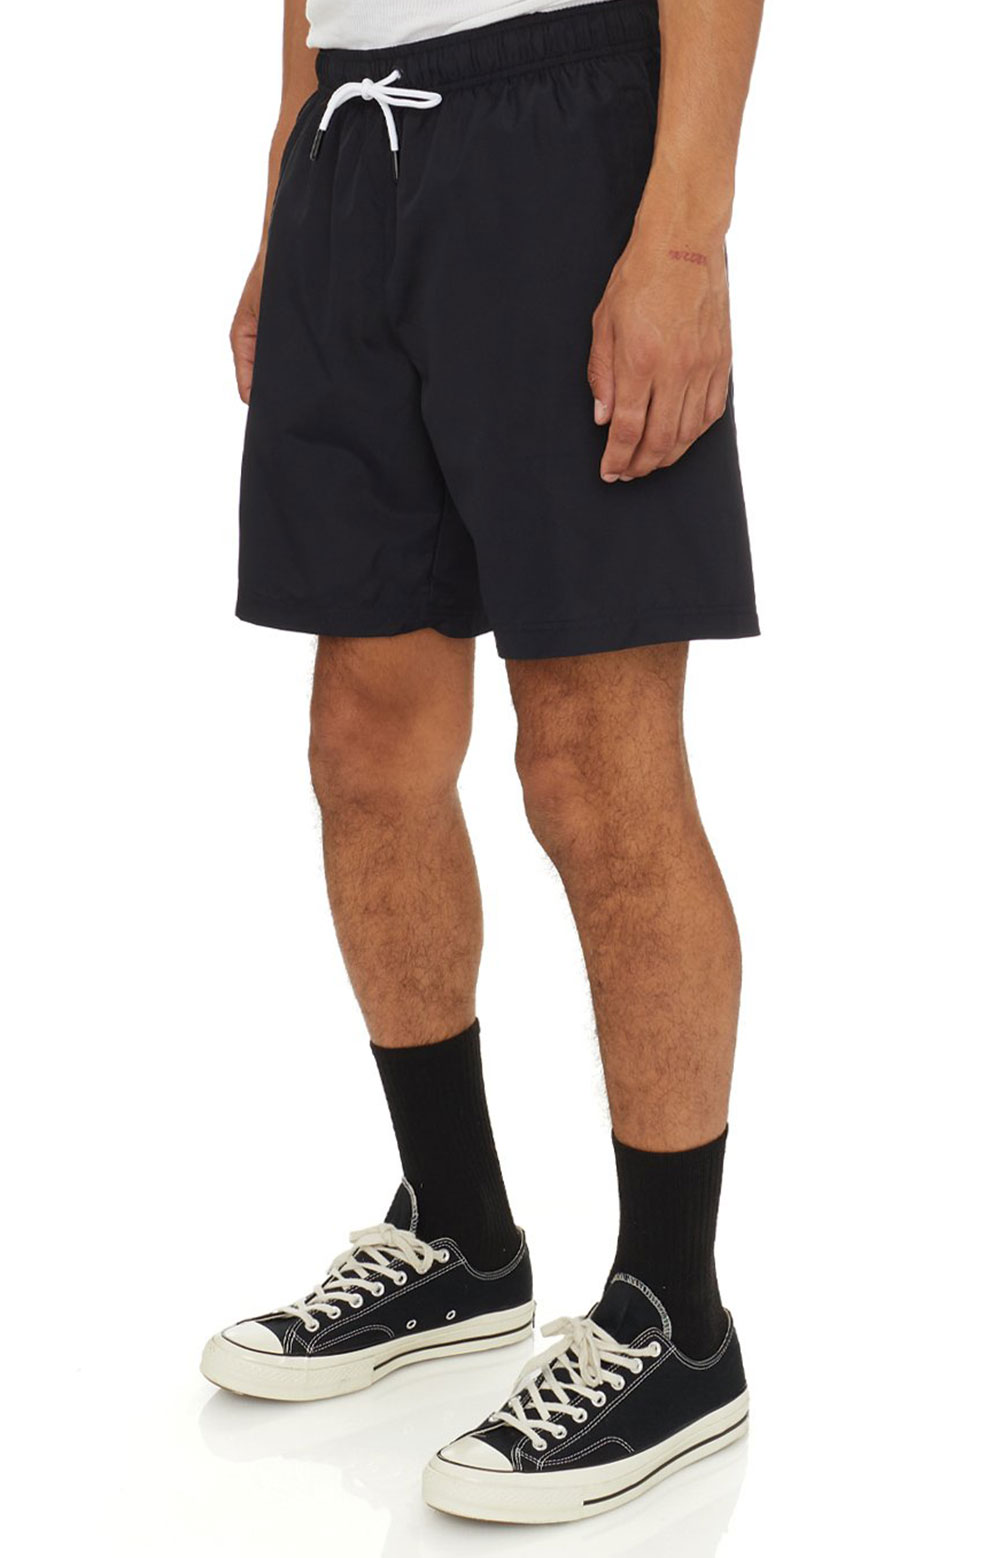 Authentic Pop Emay Shorts - Black/White  2